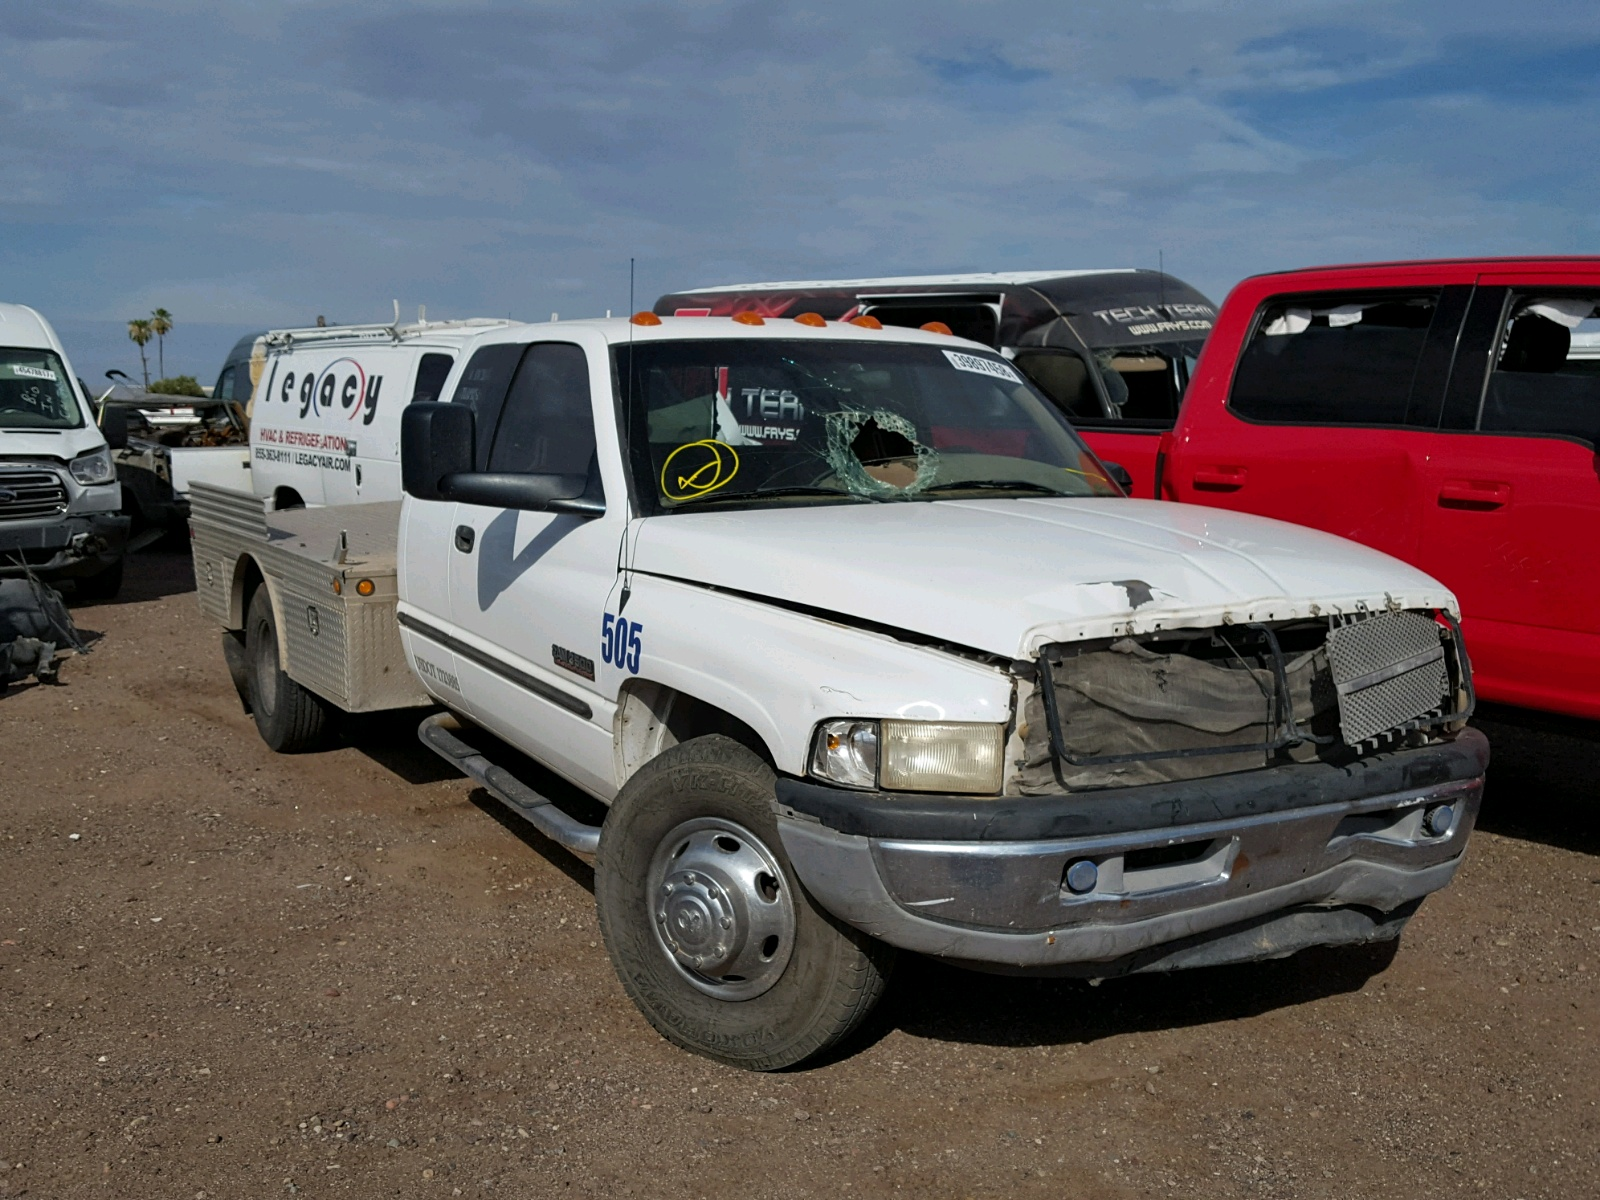 1b7mc33651j203049 2001 White Dodge Ram 3500 On Sale In Az Extended Cab 59l Left View